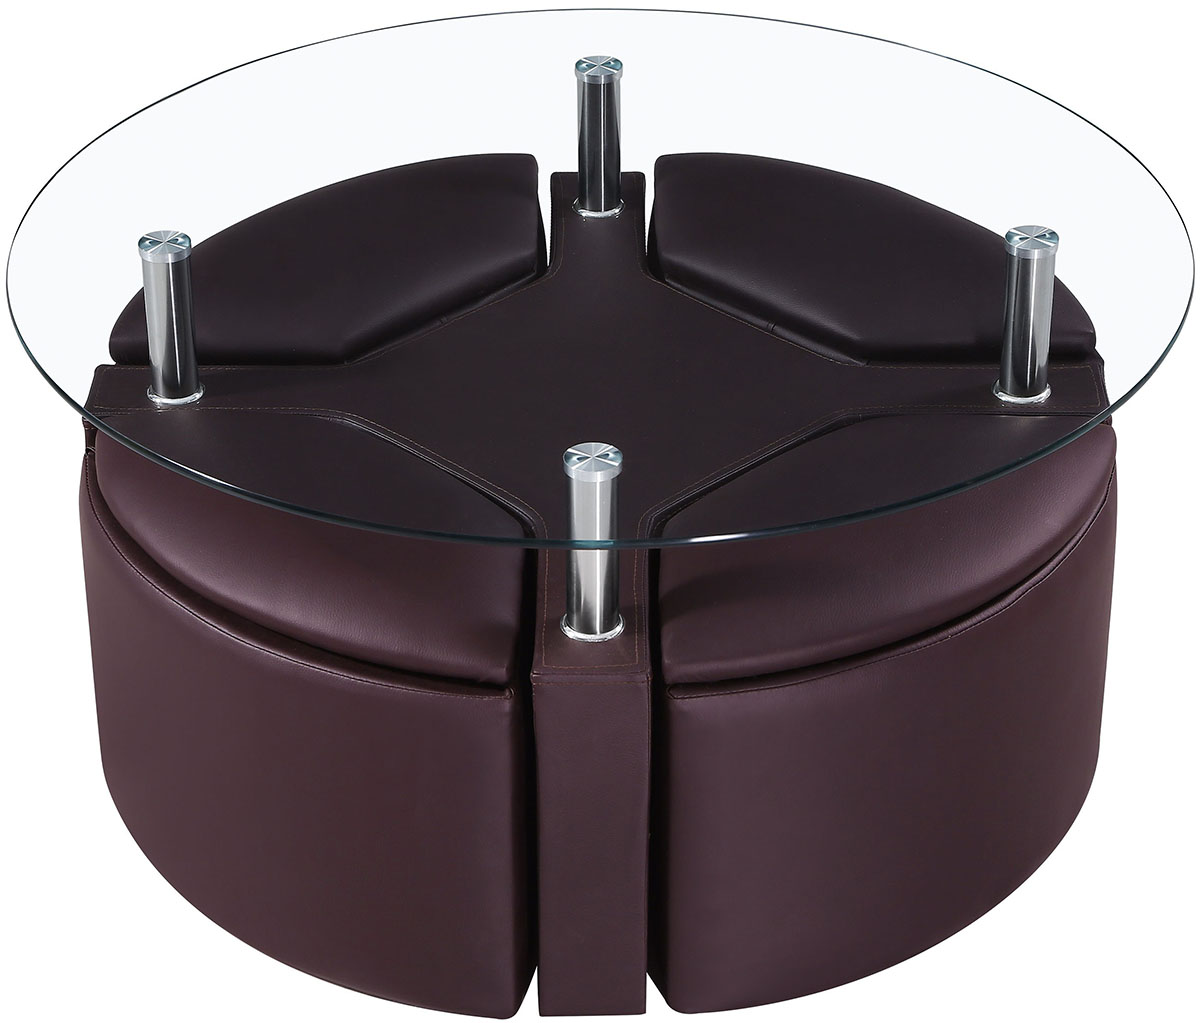 Choose Unique Convenient And Secure Coffee Table Ottoman Storage Coffee Table On The Basis Of Pouf And Frameless Glass Countertop Black Round Ottoman Coffee Table (Image 3 of 10)